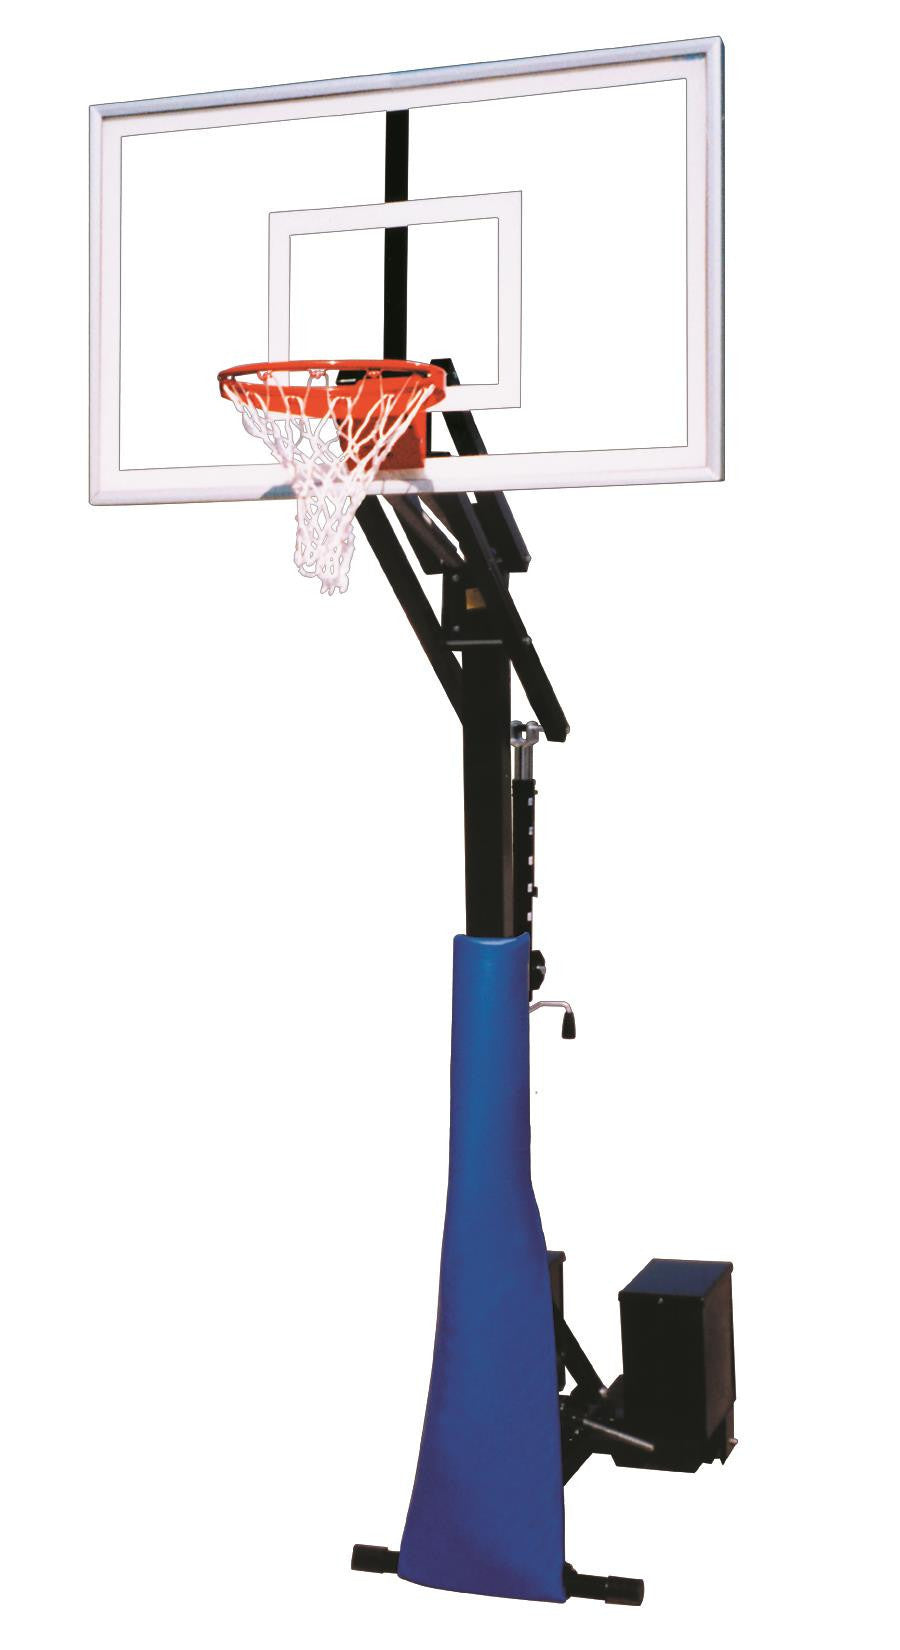 First Team Rolla Jam Nitro Adjustable Portable Basketball Hoop 60 inch Tempered Glass